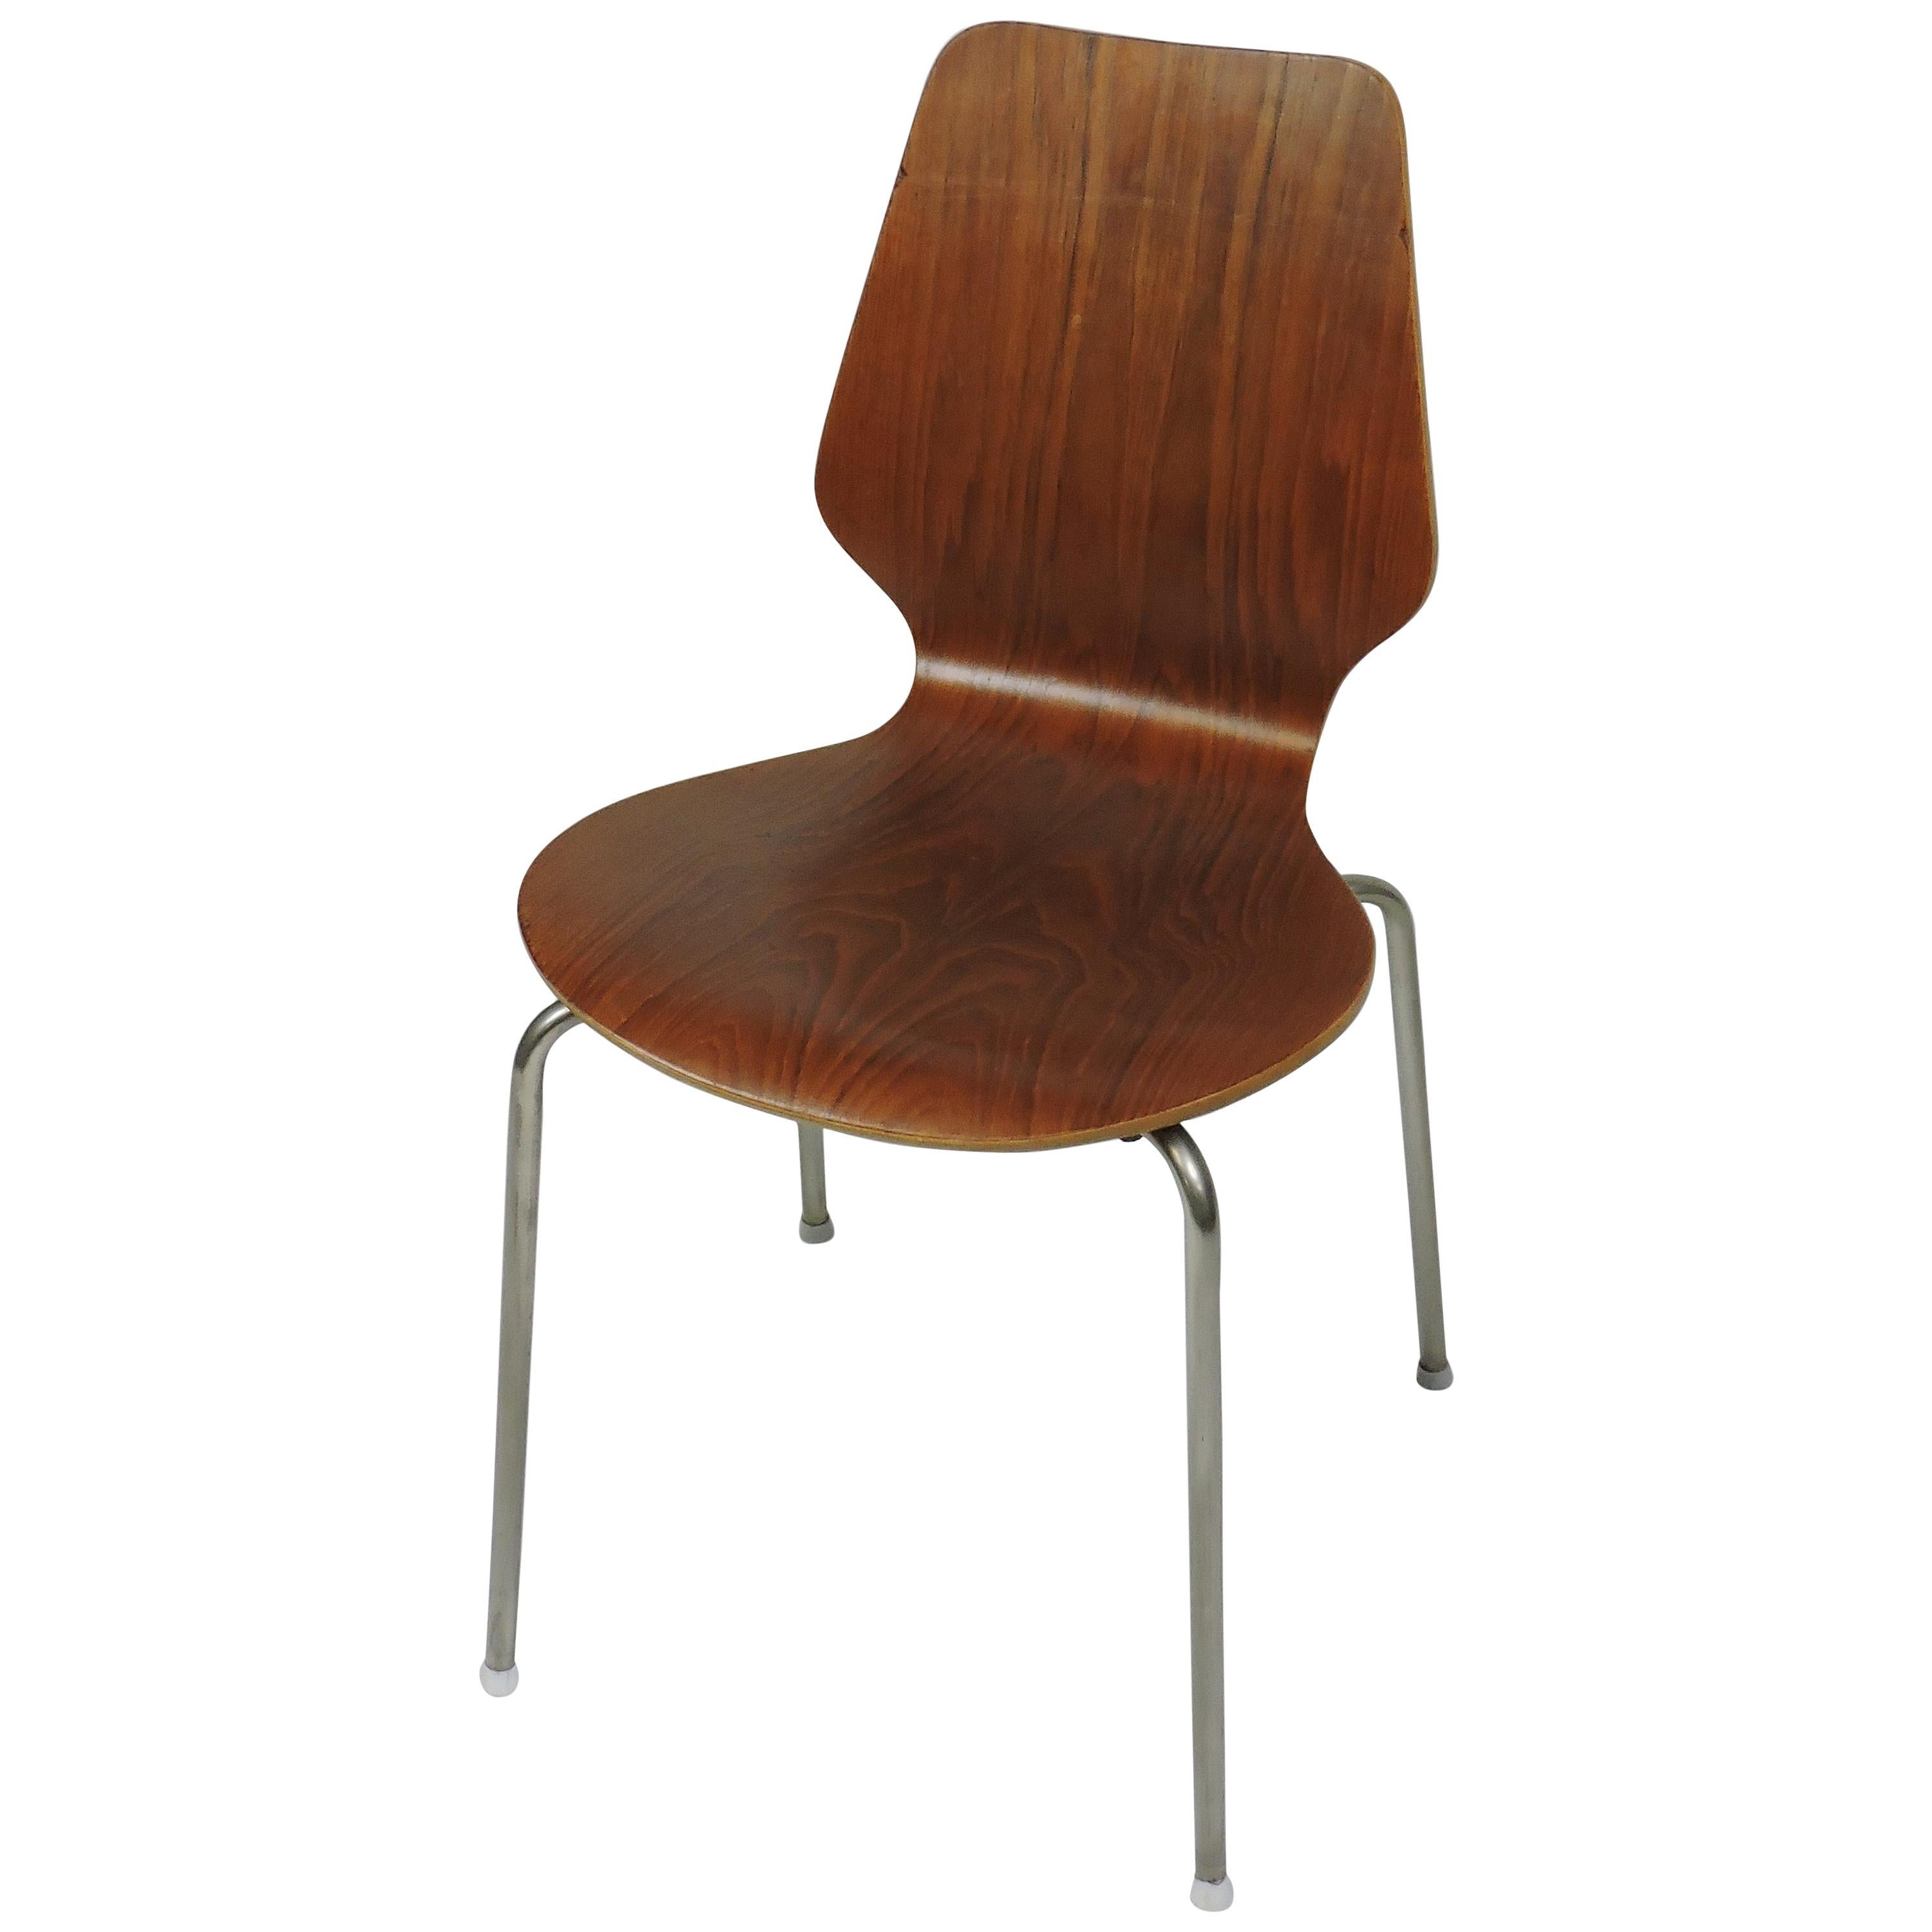 Midcentury Danish Modern Bentwood Dining, Side or Desk Chair